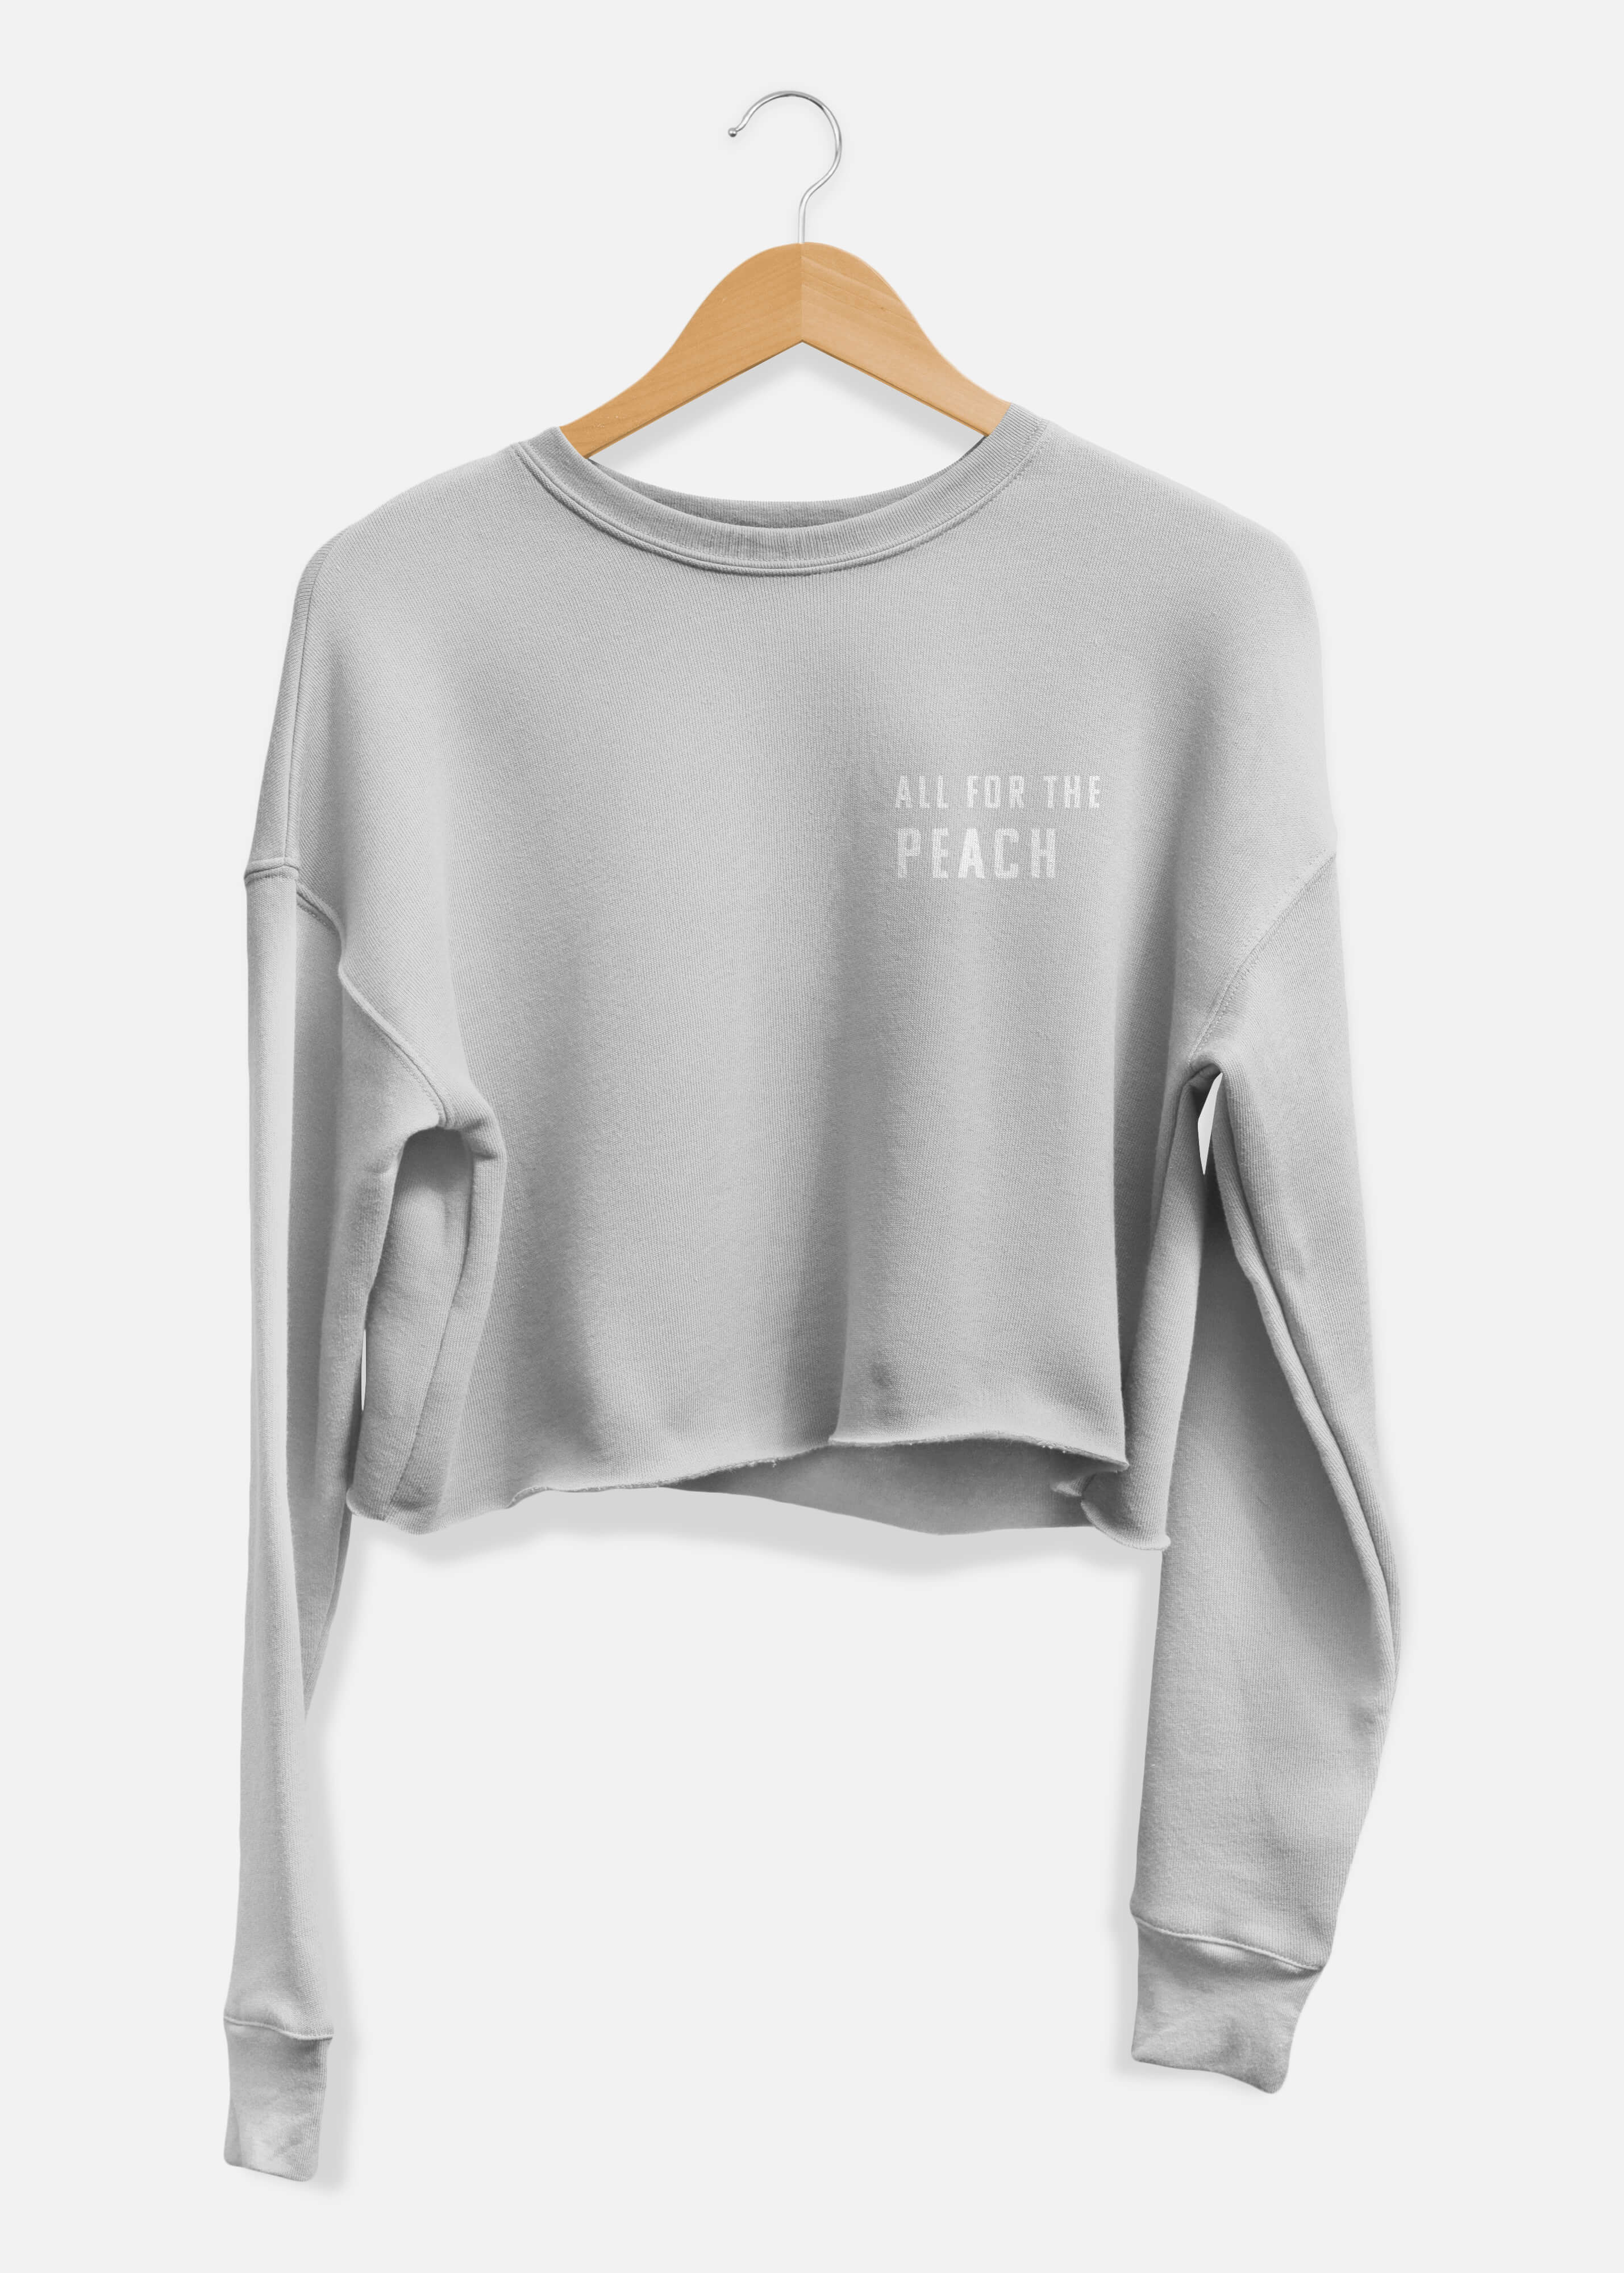 All For The Peach Cropped Sweater